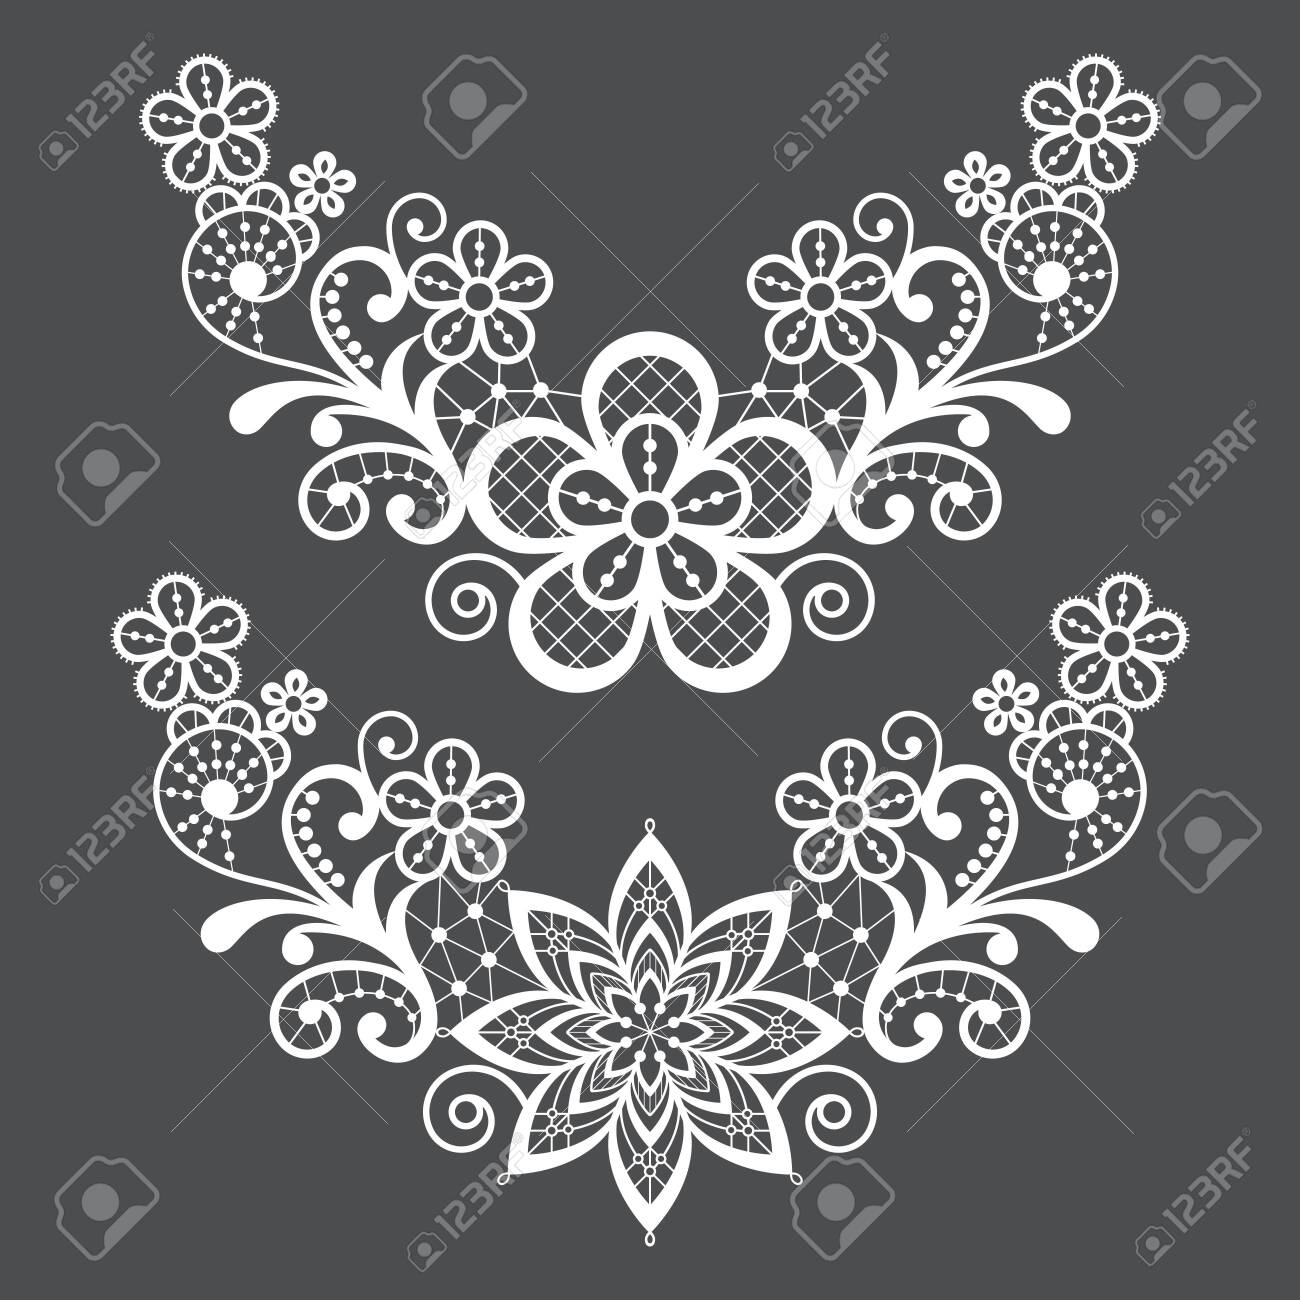 Lace single vector pattern set - floral lace half wreath, half circles design collection, retro openwork background - 124429073